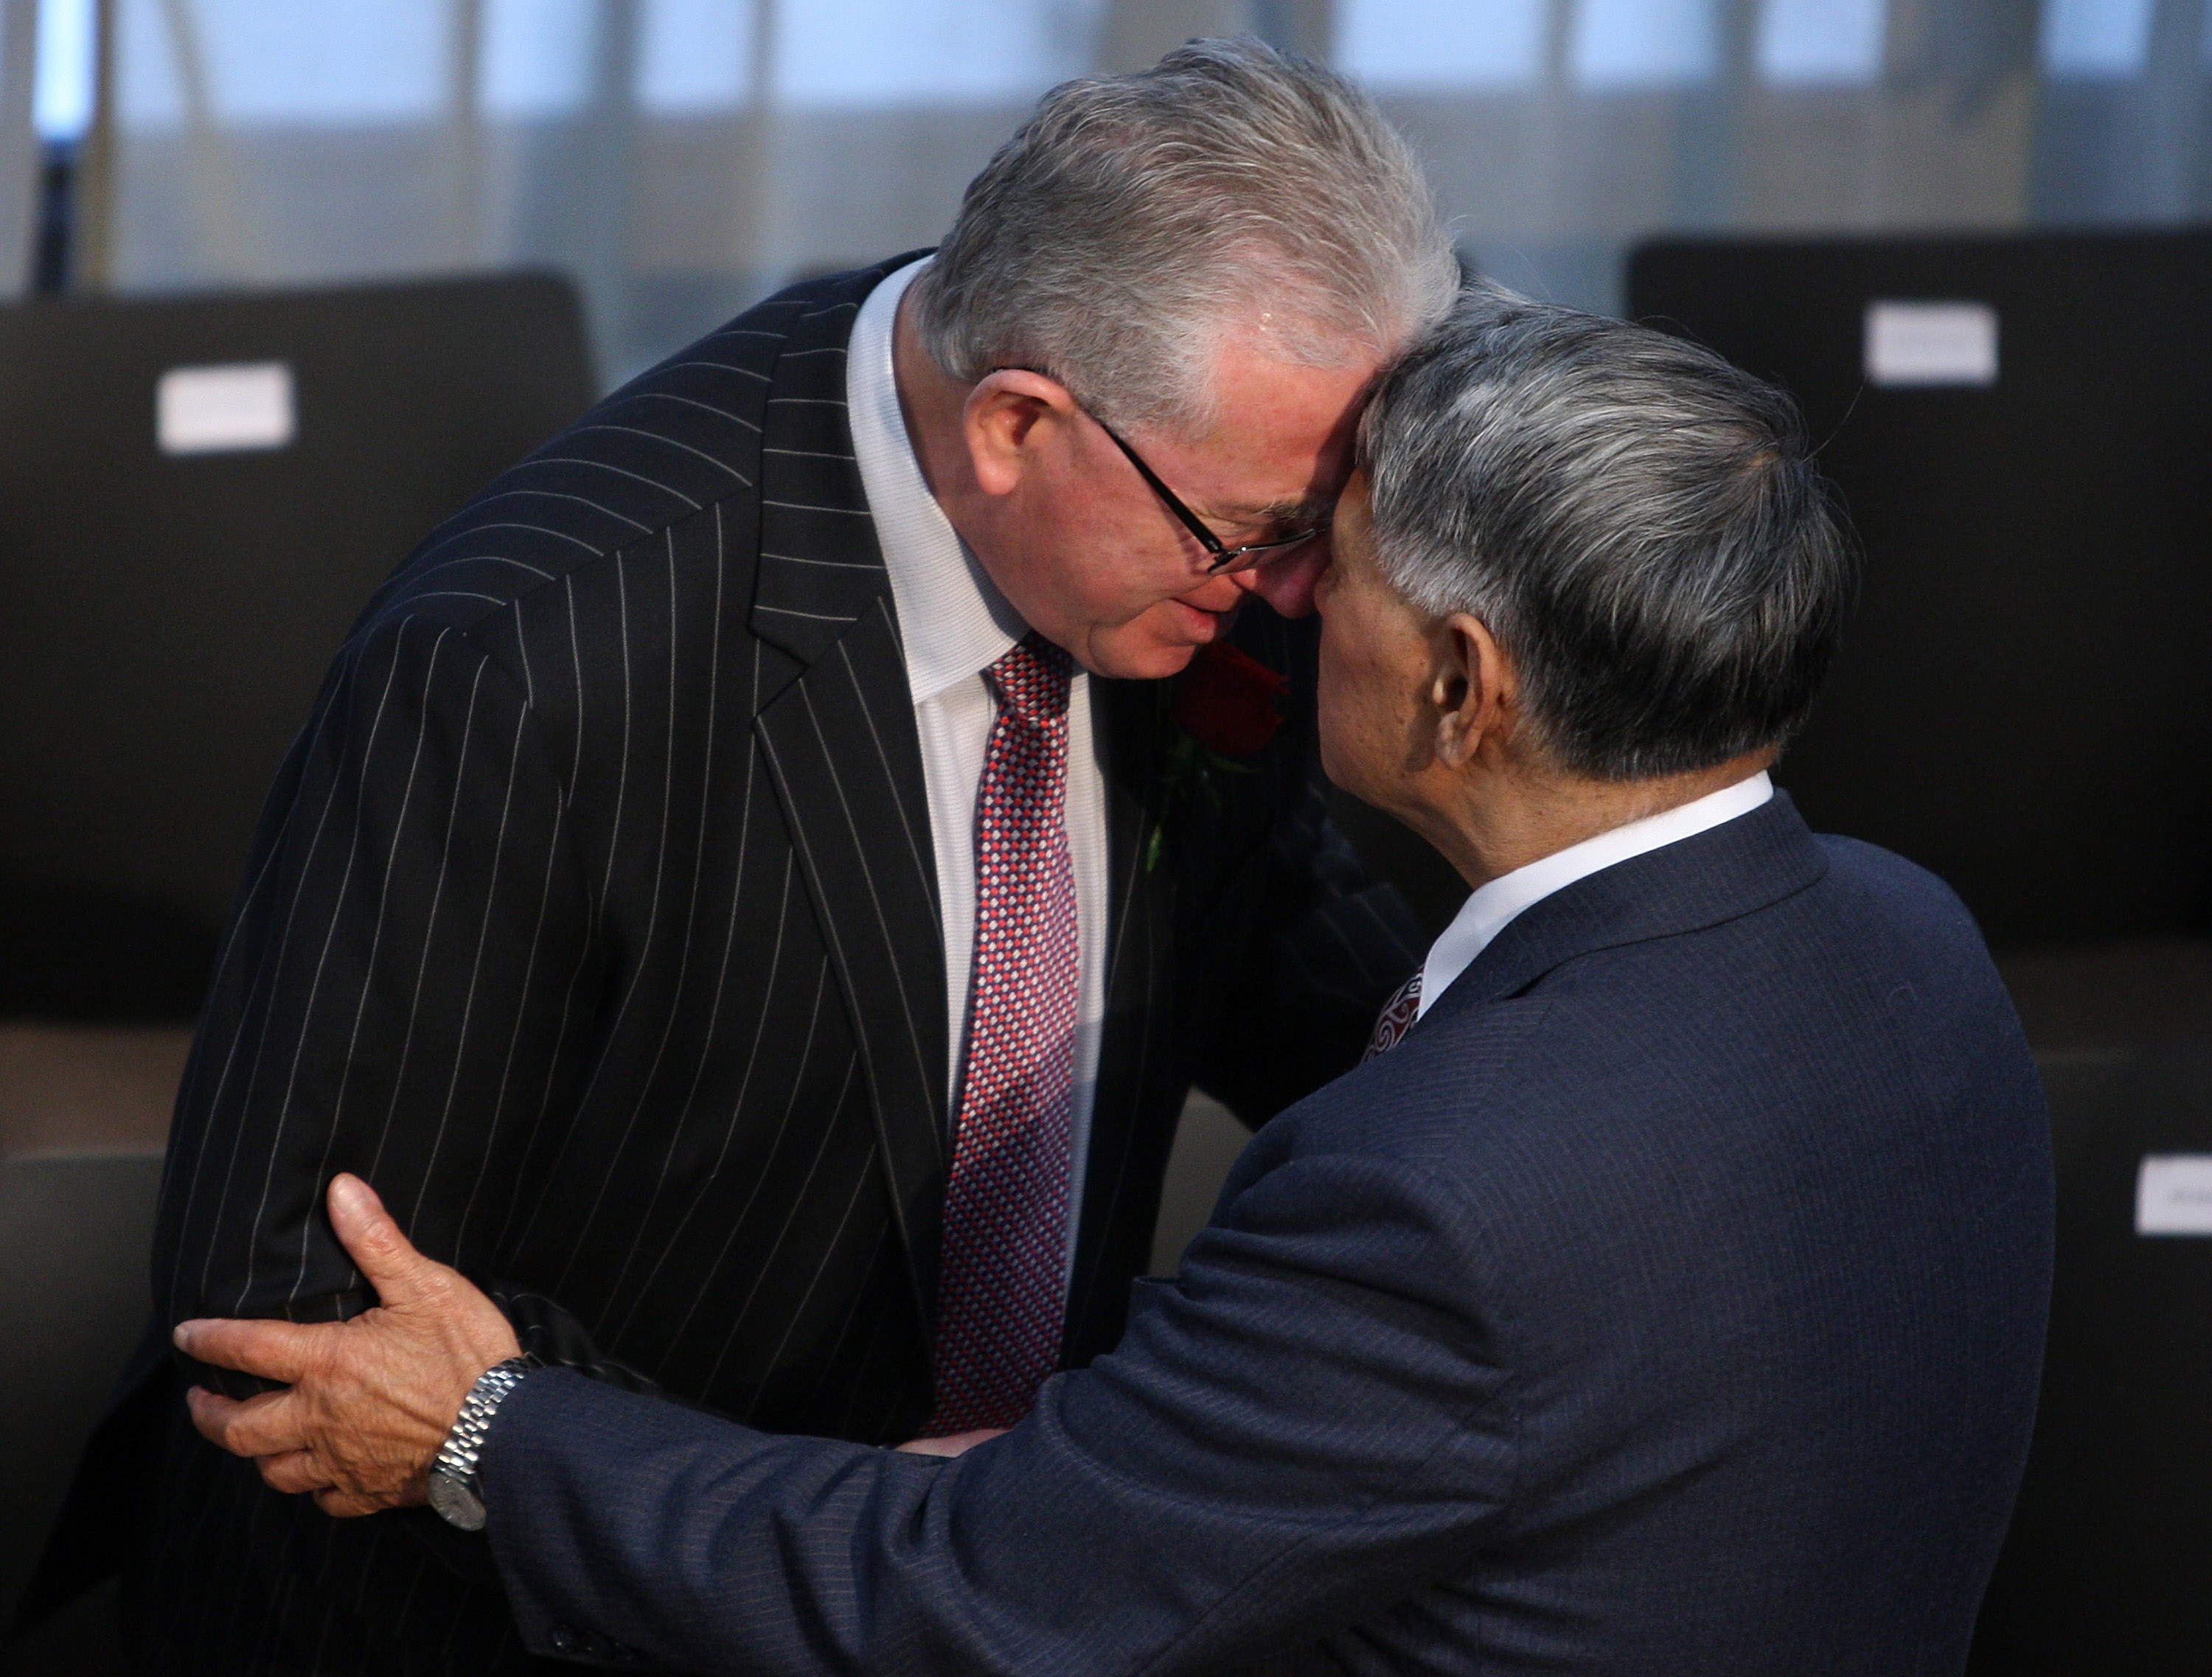 Treaty Negotiations minister Dr Michael Cullen hongis (maori greeting) Te Atiawa kaumatua Sam Jackson during the signing.